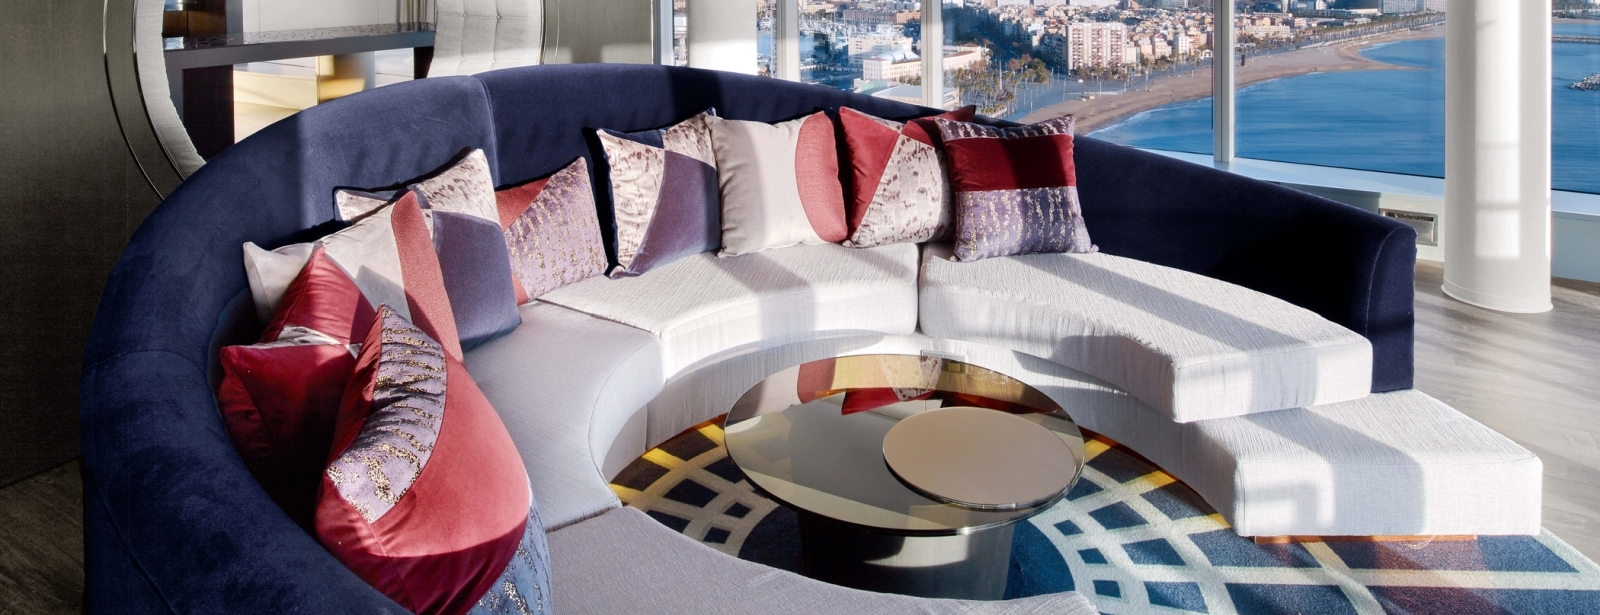 Extreme Wow Suite Living Room with views at W Barcelona